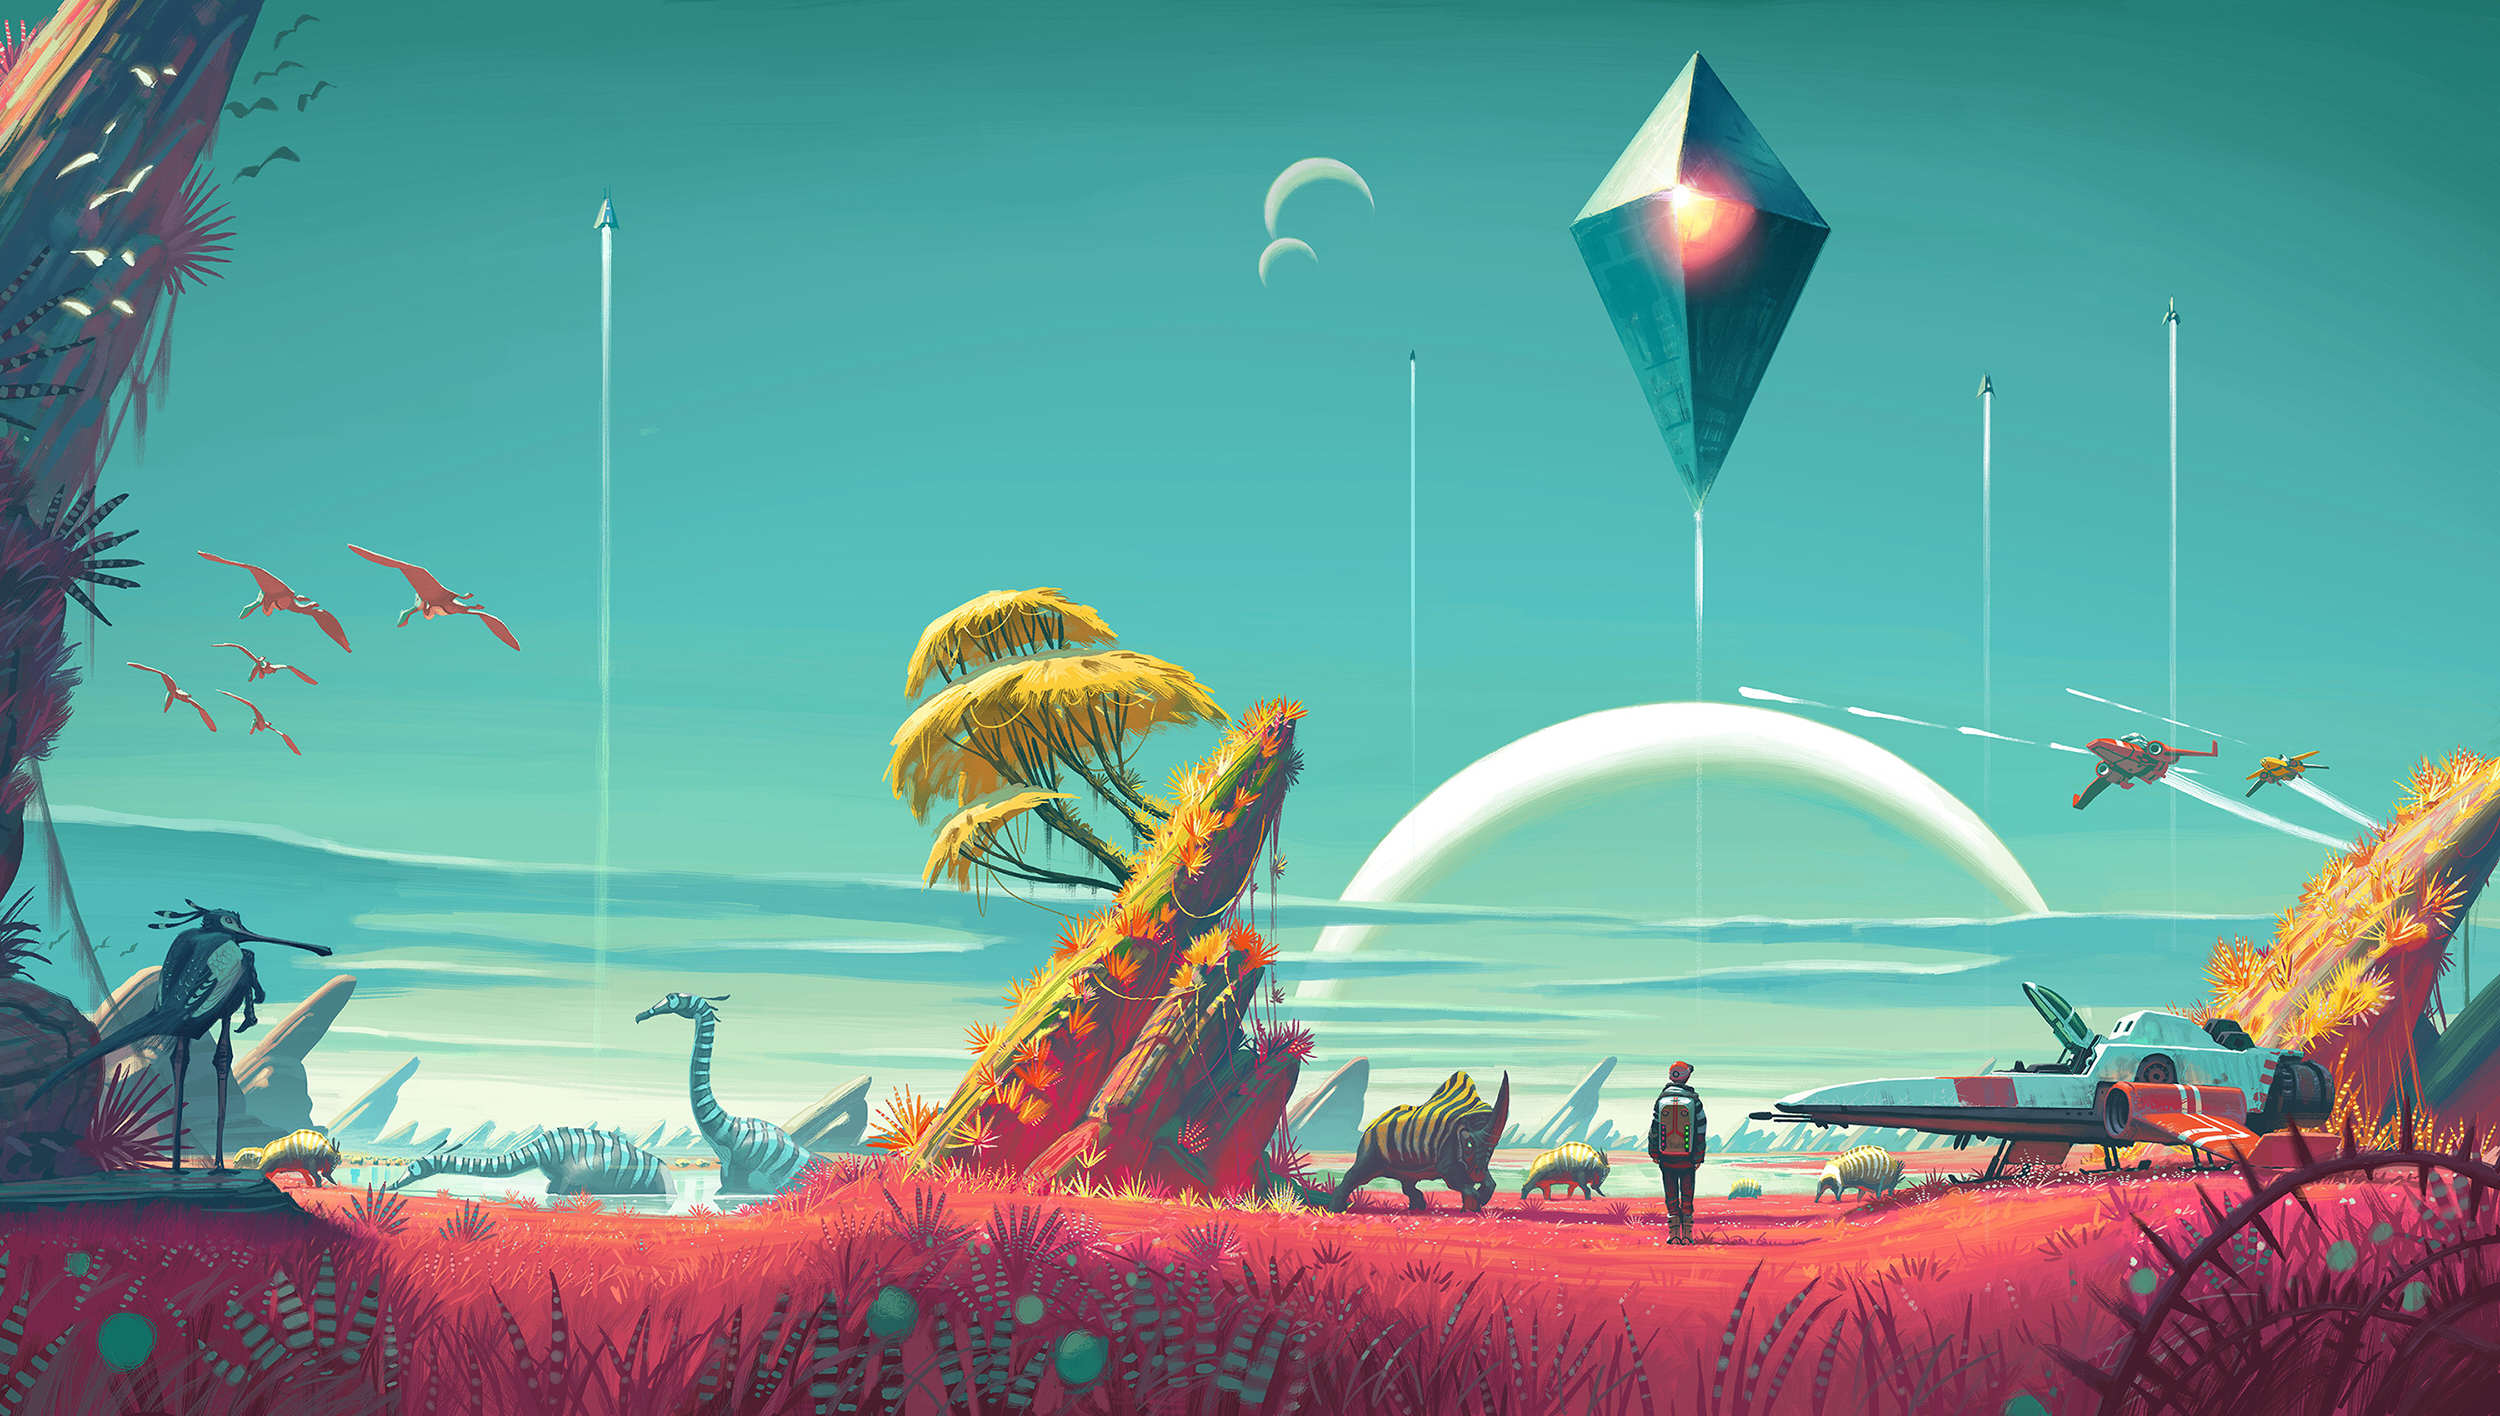 No Mans Sky Dev Finishes Work On First Major Update 1434567347 no mans sky